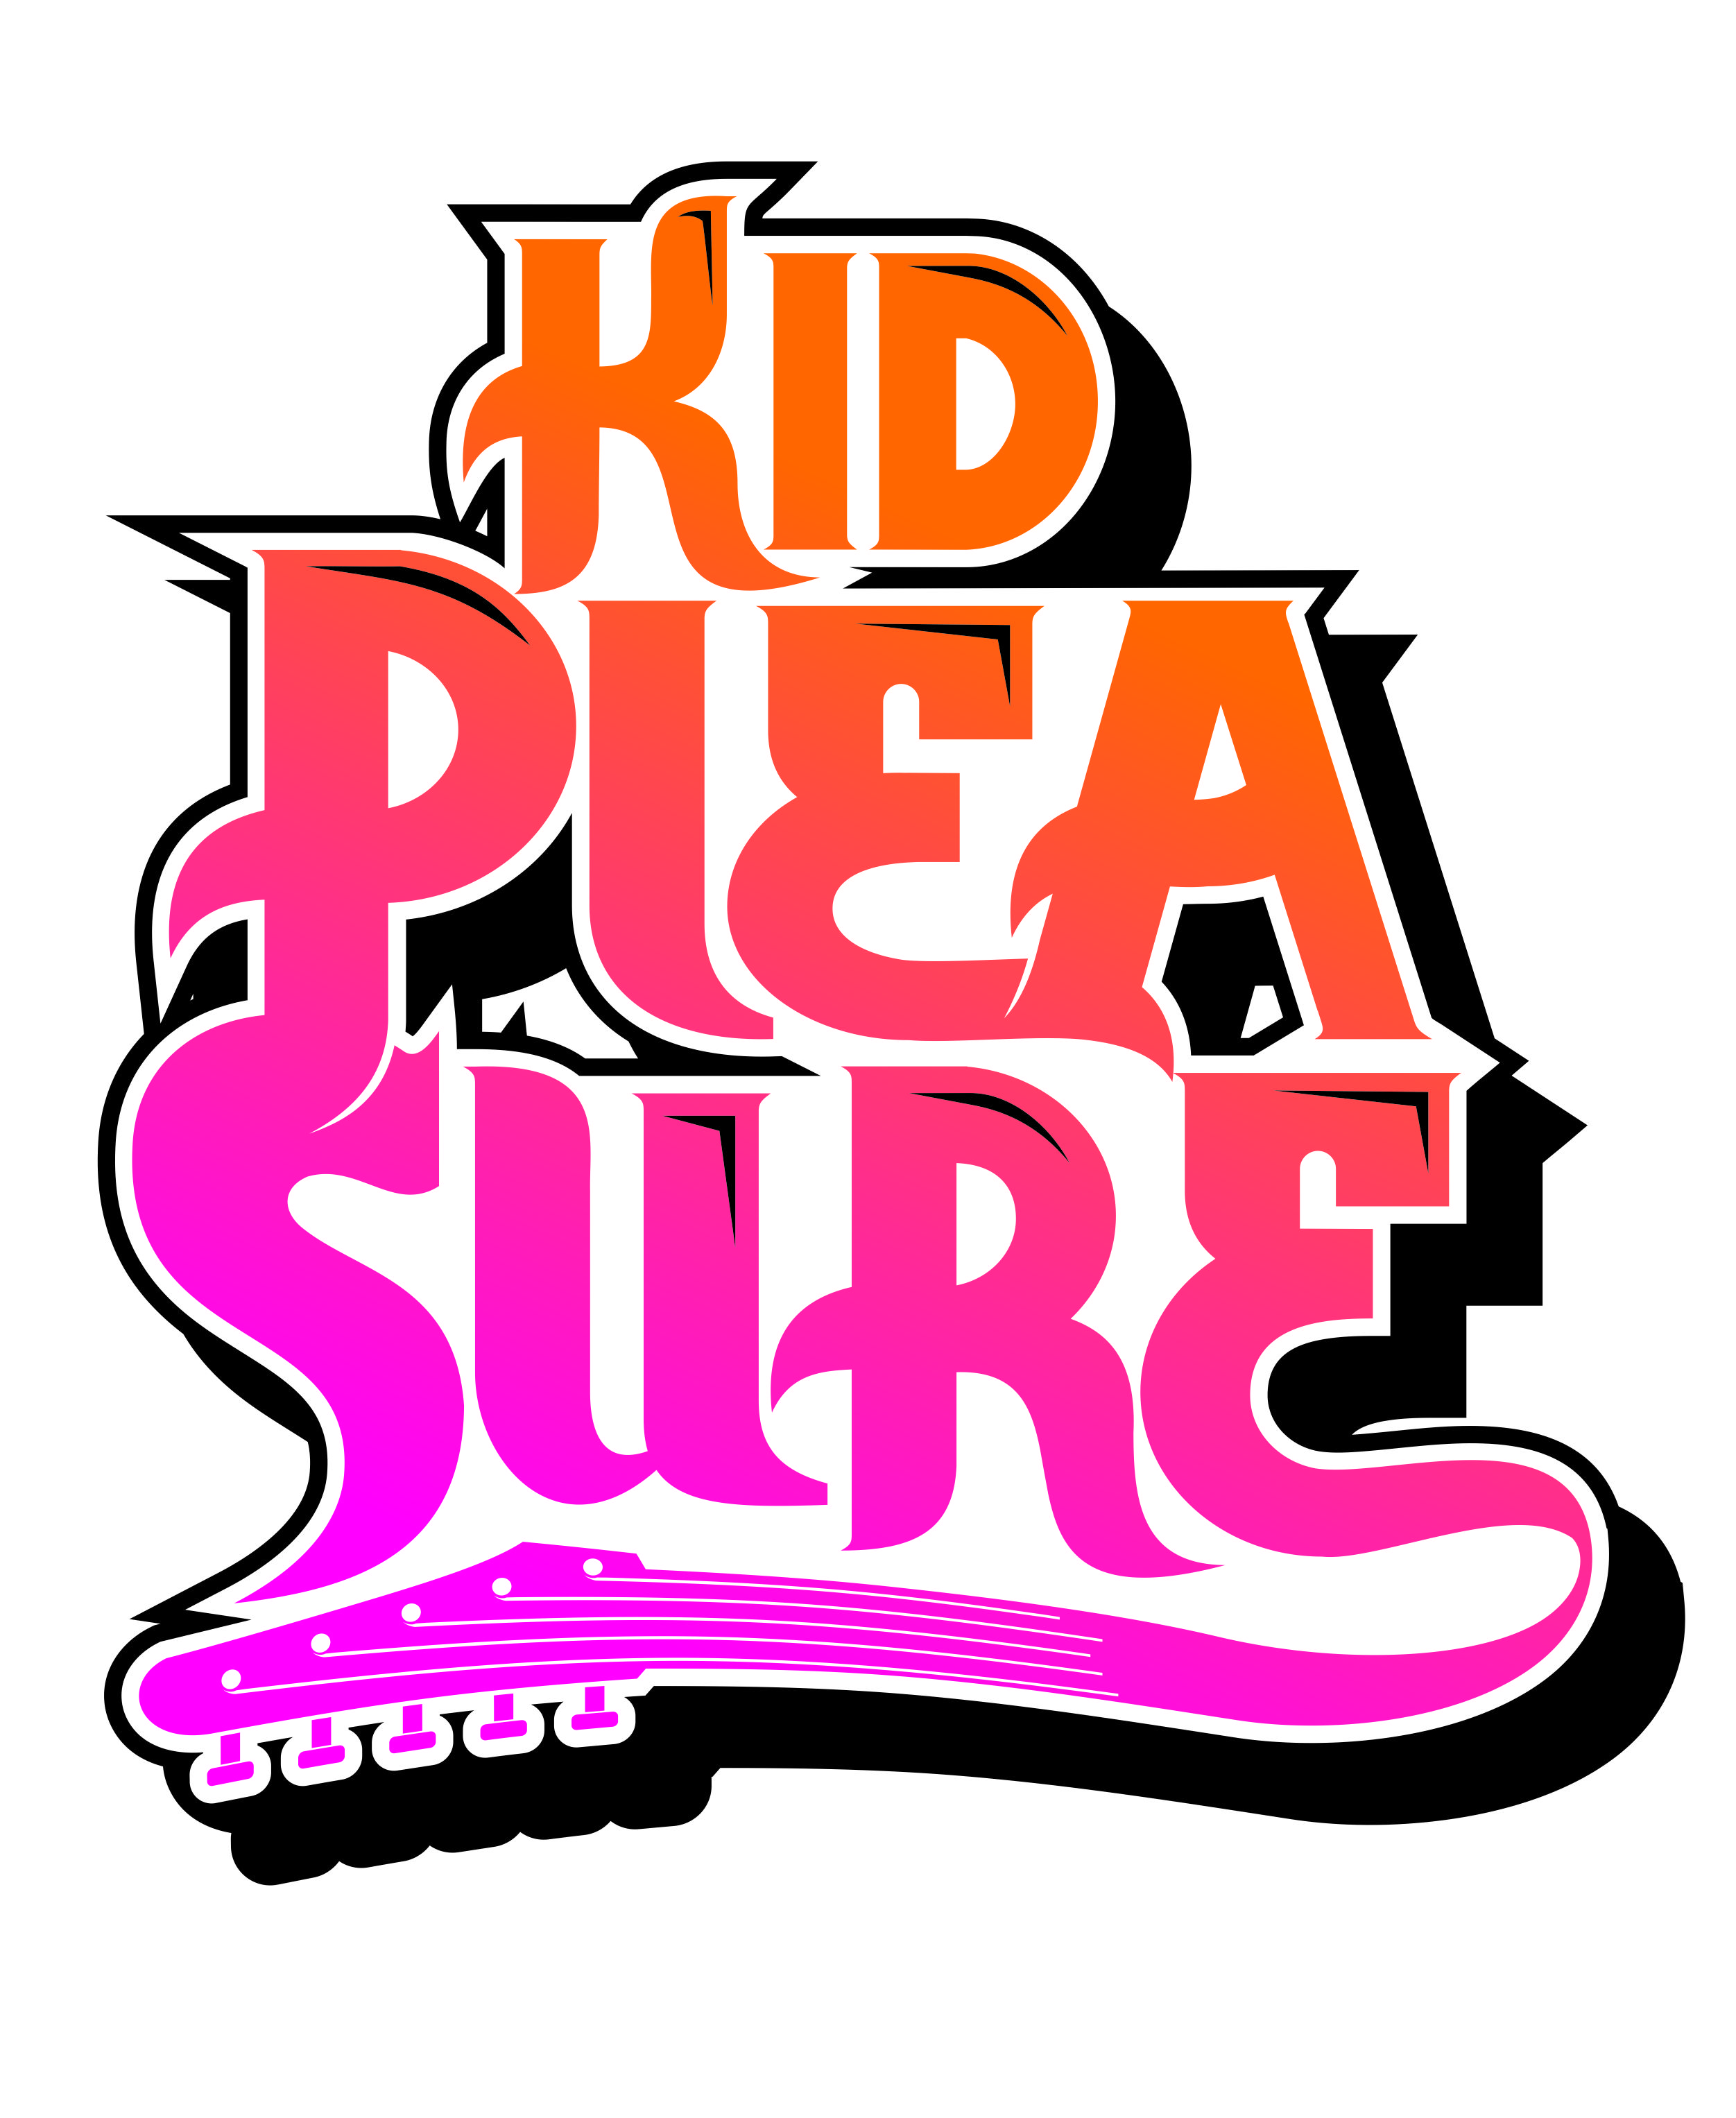 Kid Pleasure